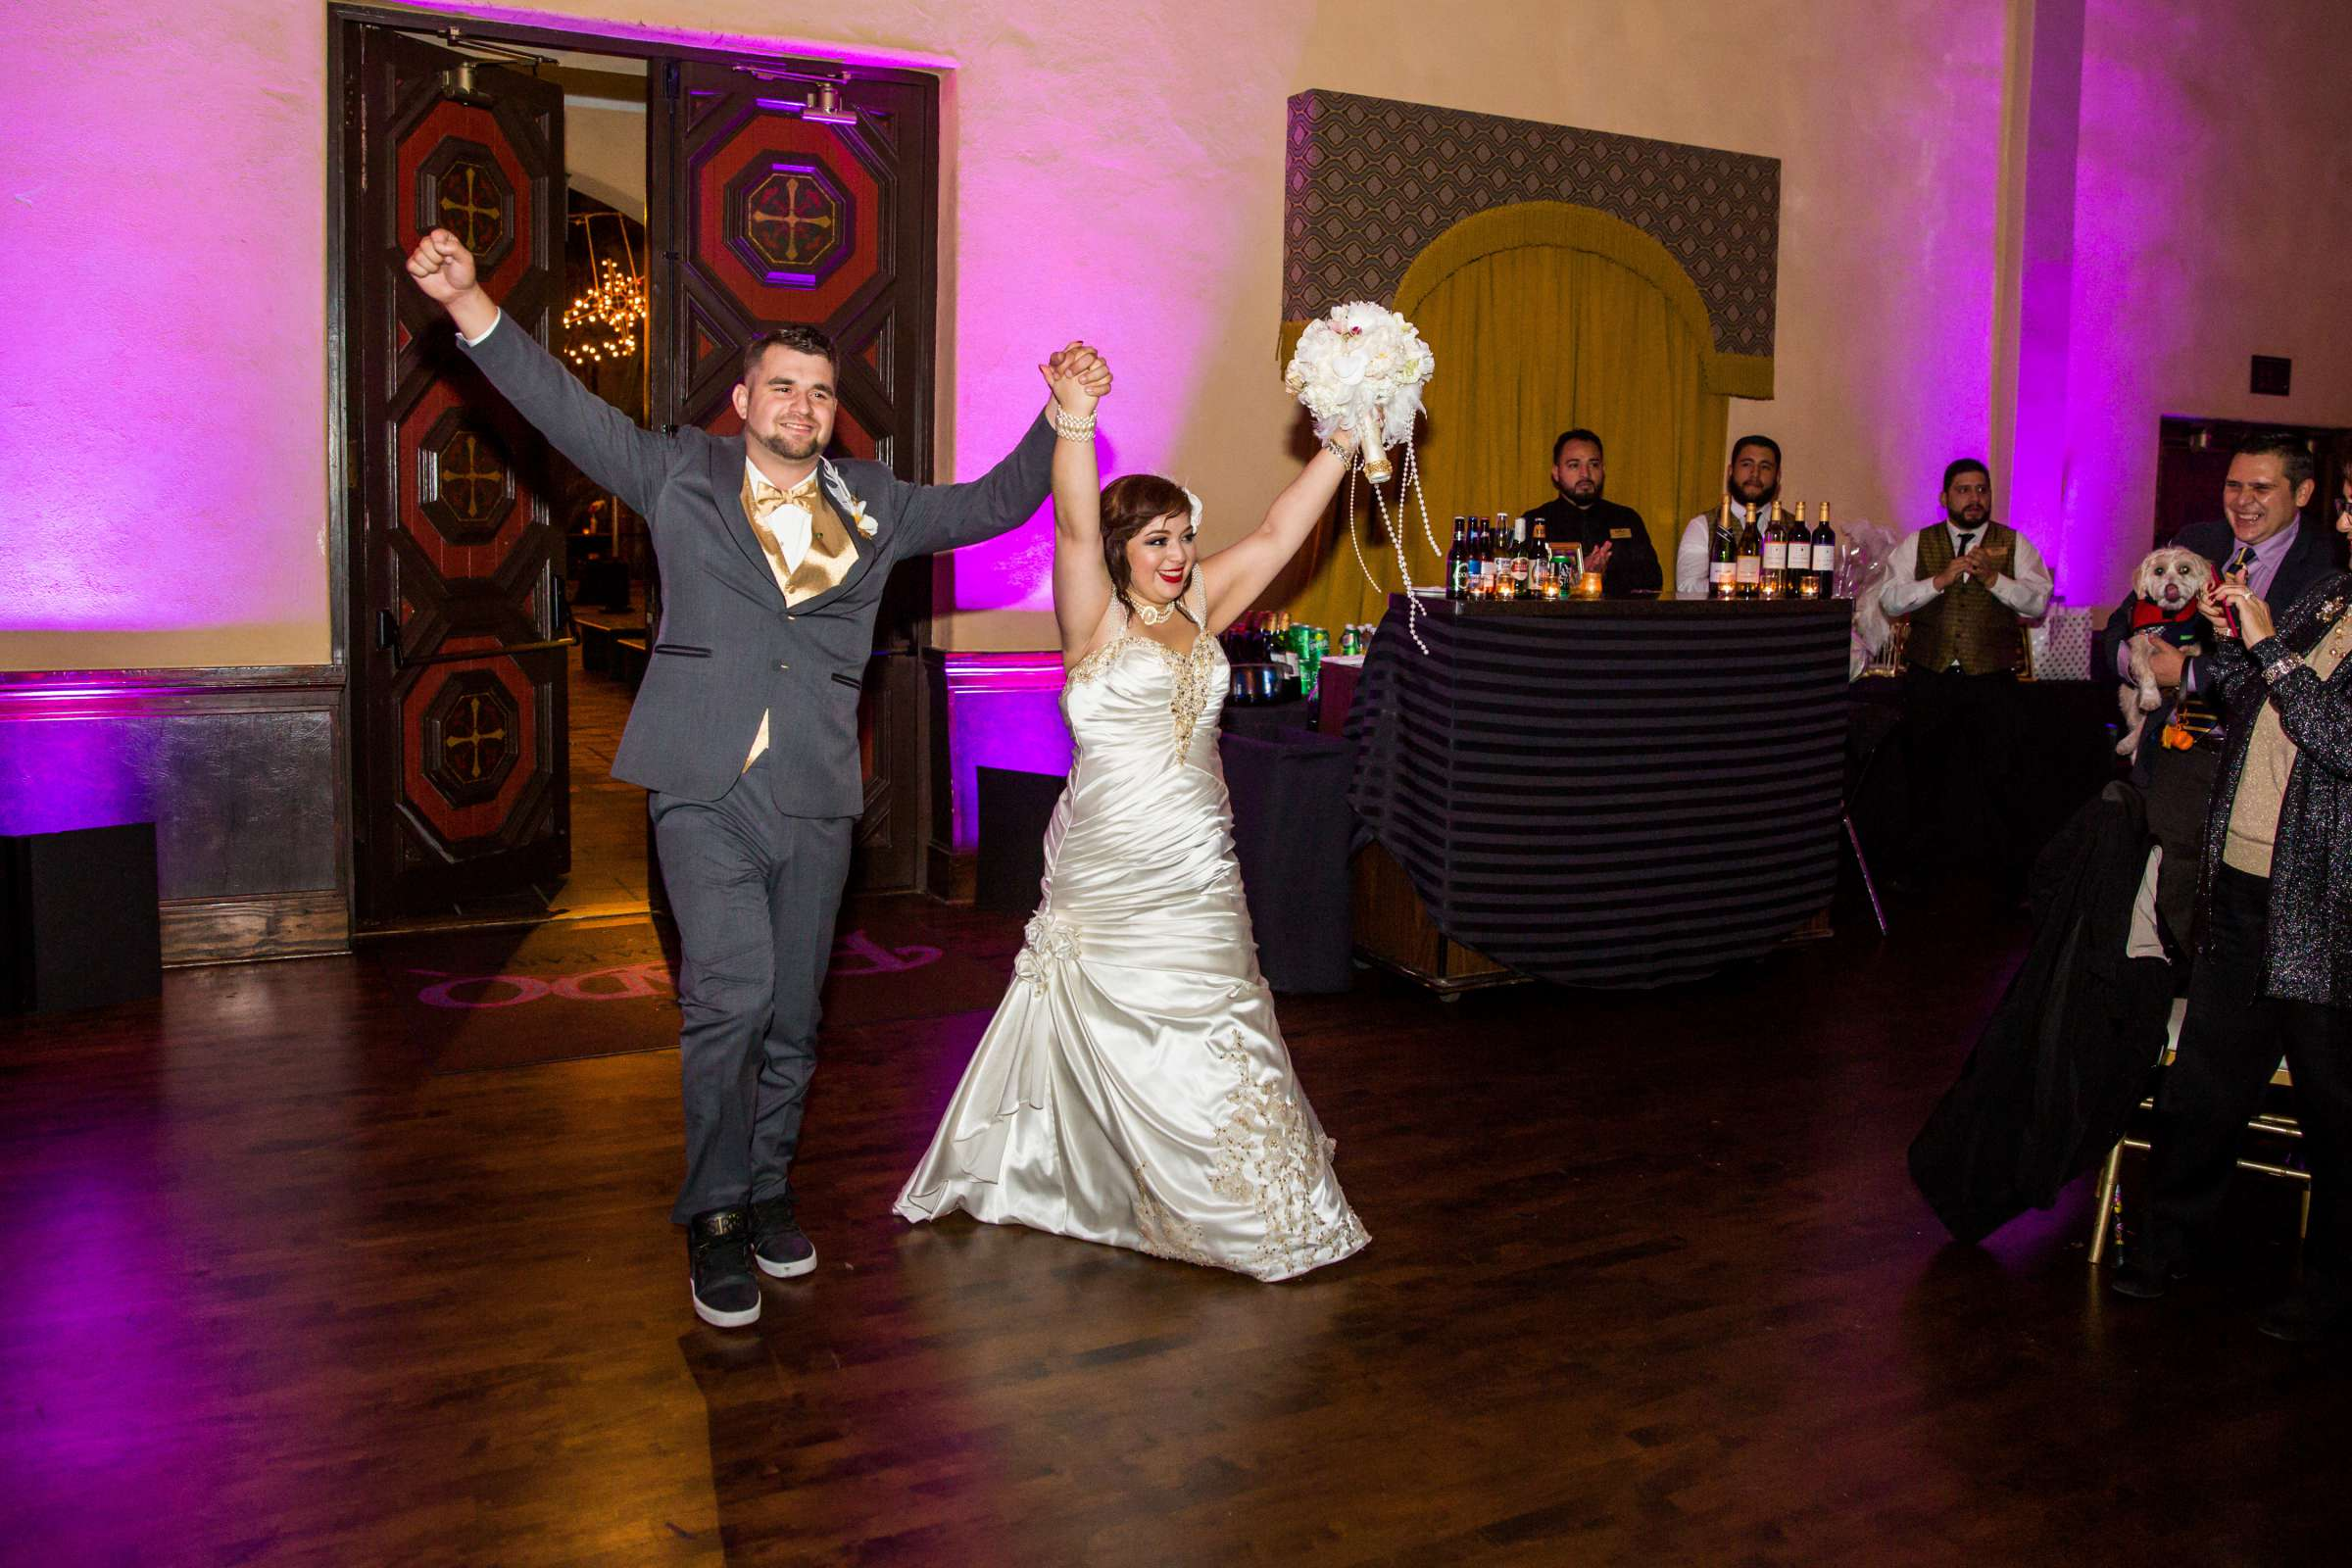 The Prado Wedding coordinated by Breezy Day Weddings, Aalis and Michael Wedding Photo #29 by True Photography